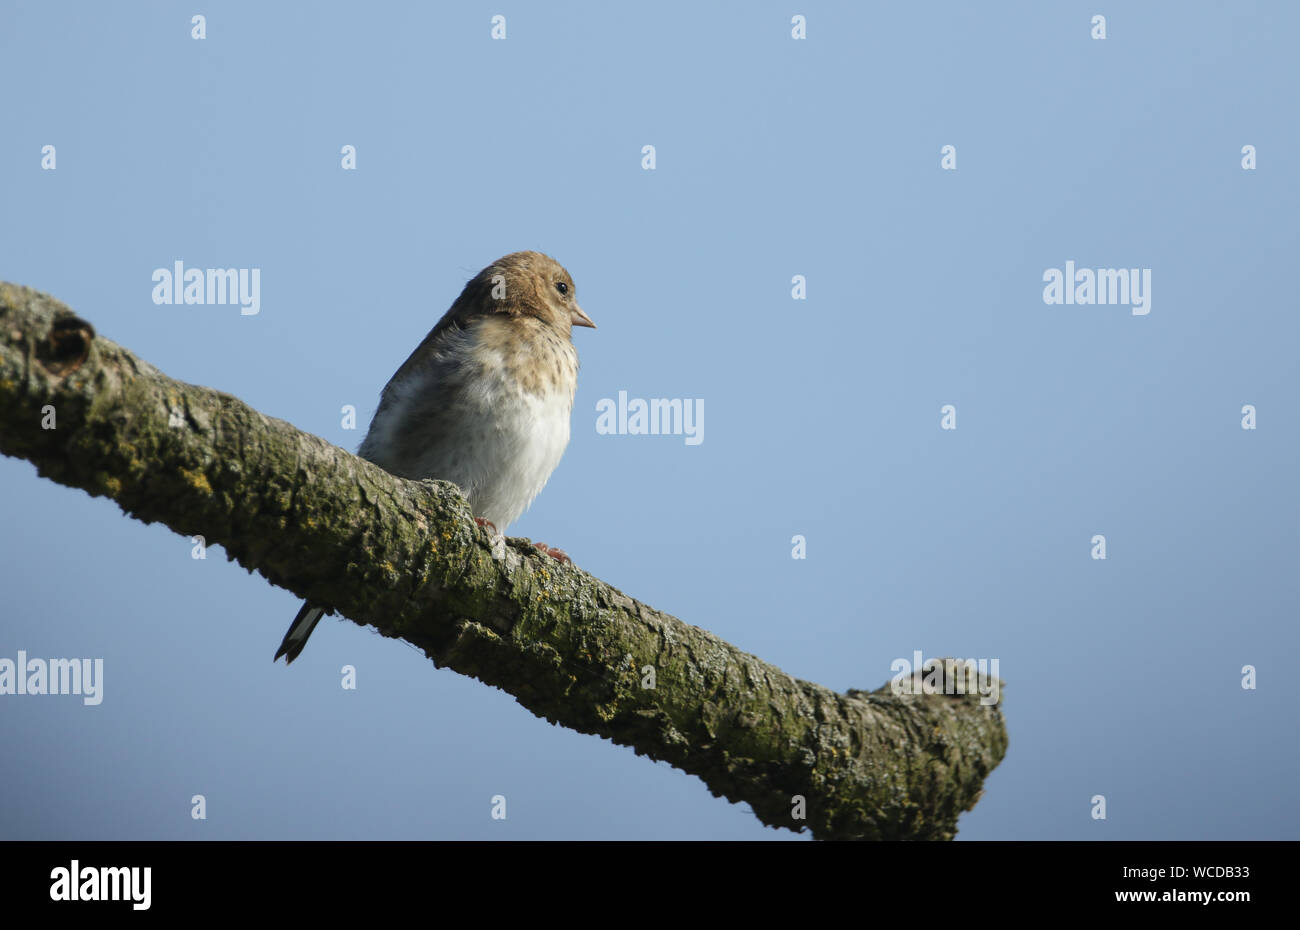 A beautiful juvenile Goldfinch, Carduelis carduelis, perched on a tree. Stock Photo